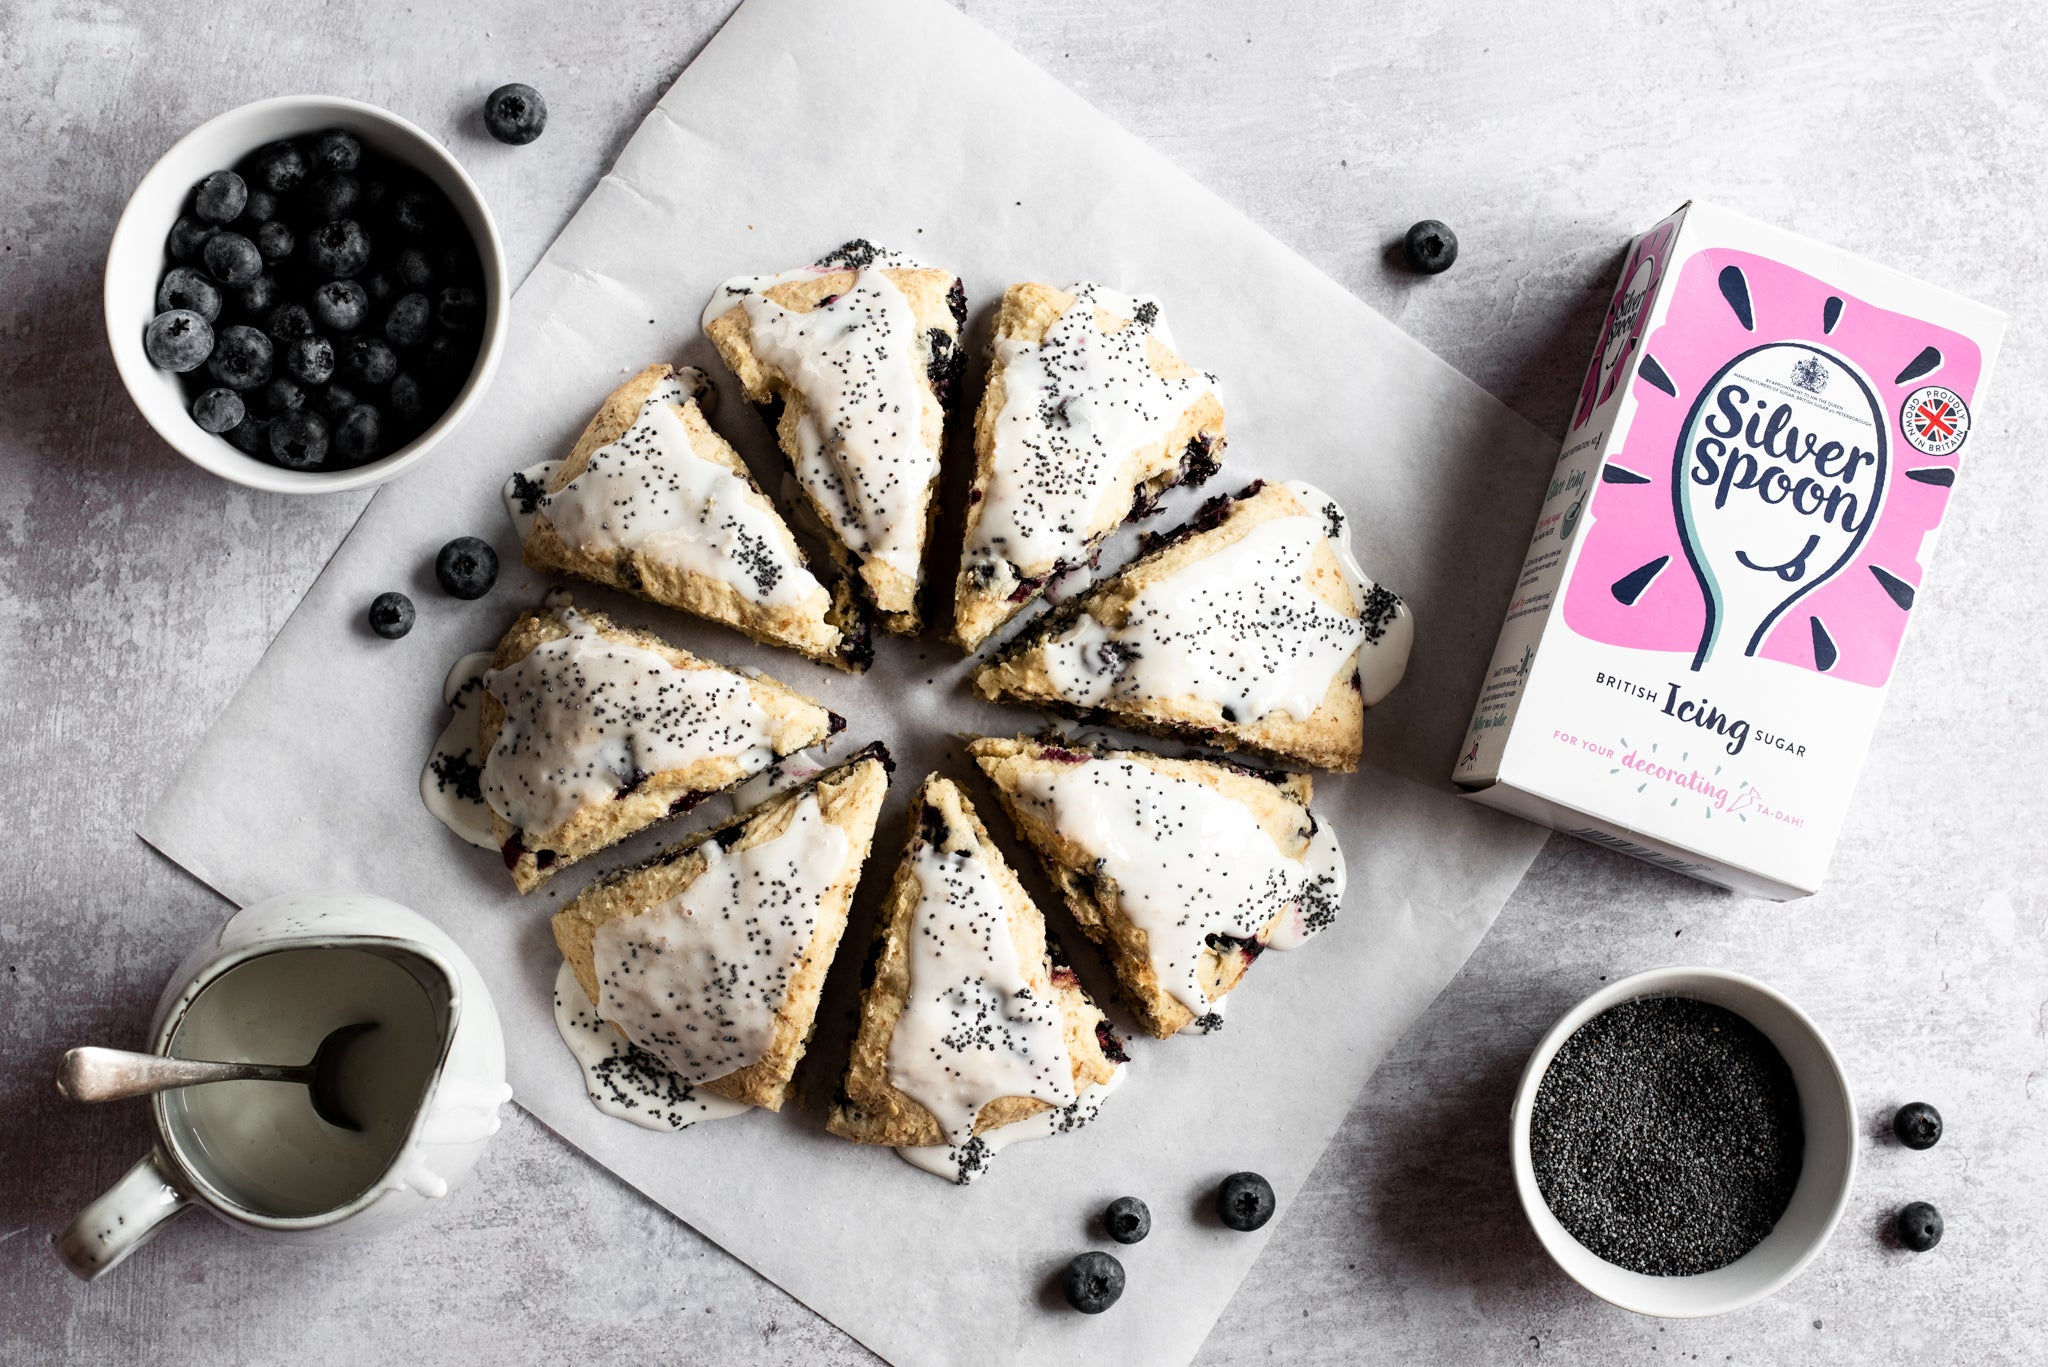 Summer-Berry-Scones-With-Lemon-Drizzle-Poppy-Seeds-WEB-RES-3.jpg